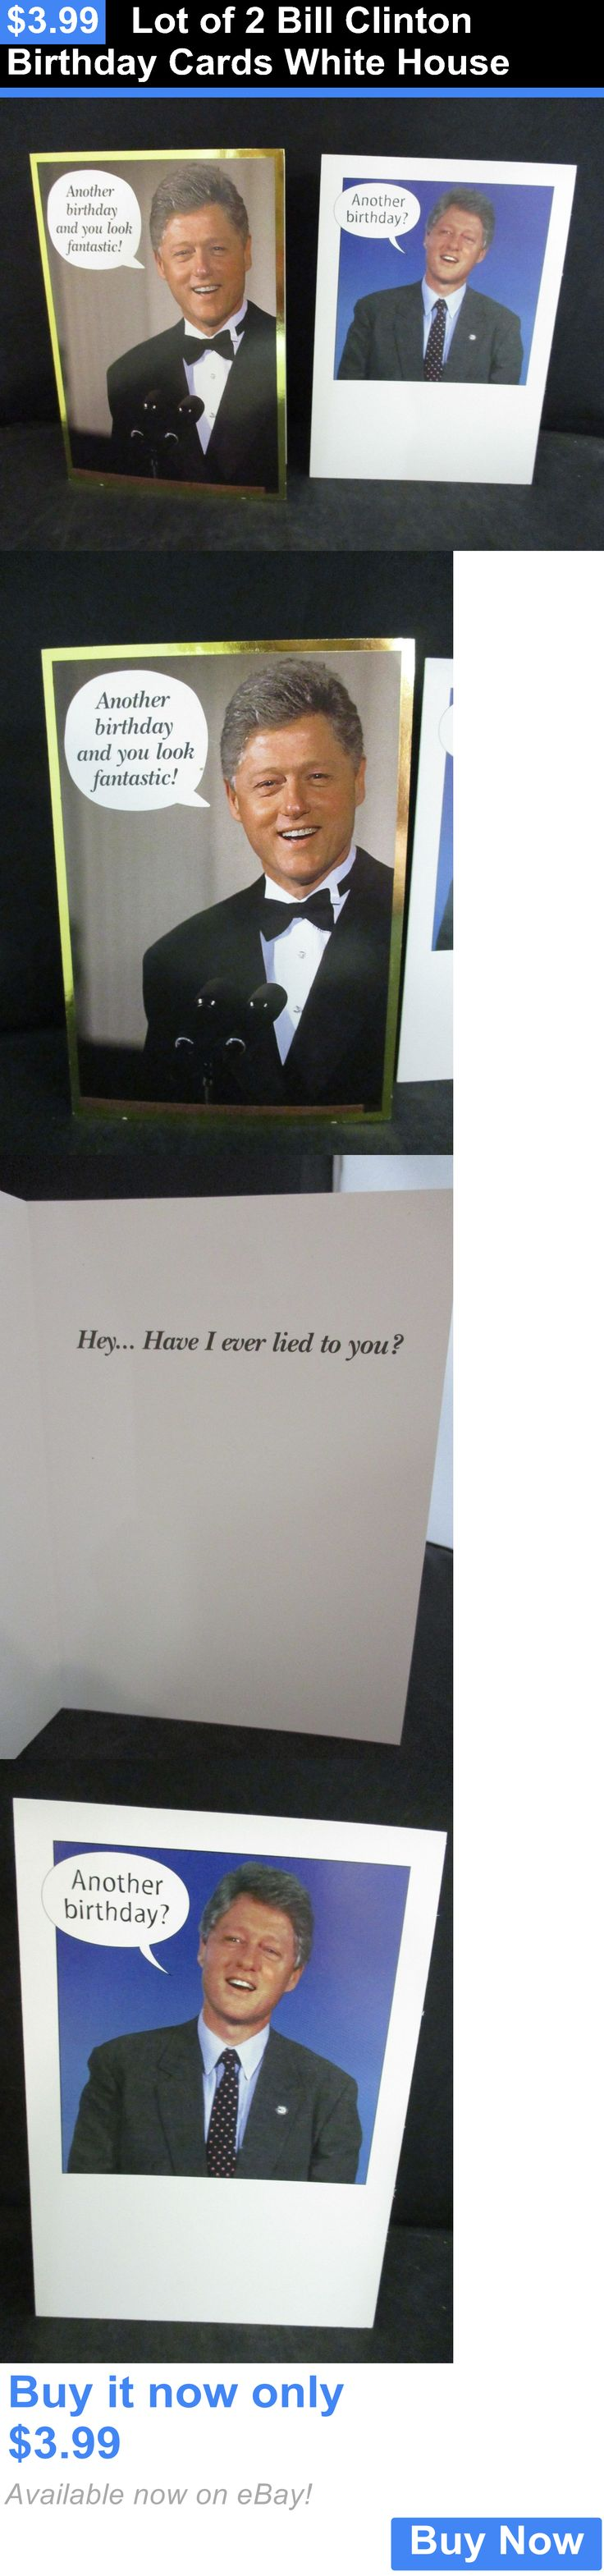 Bill Clinton: Lot Of 2 Bill Clinton Birthday Cards White House BUY IT NOW ONLY: $3.99